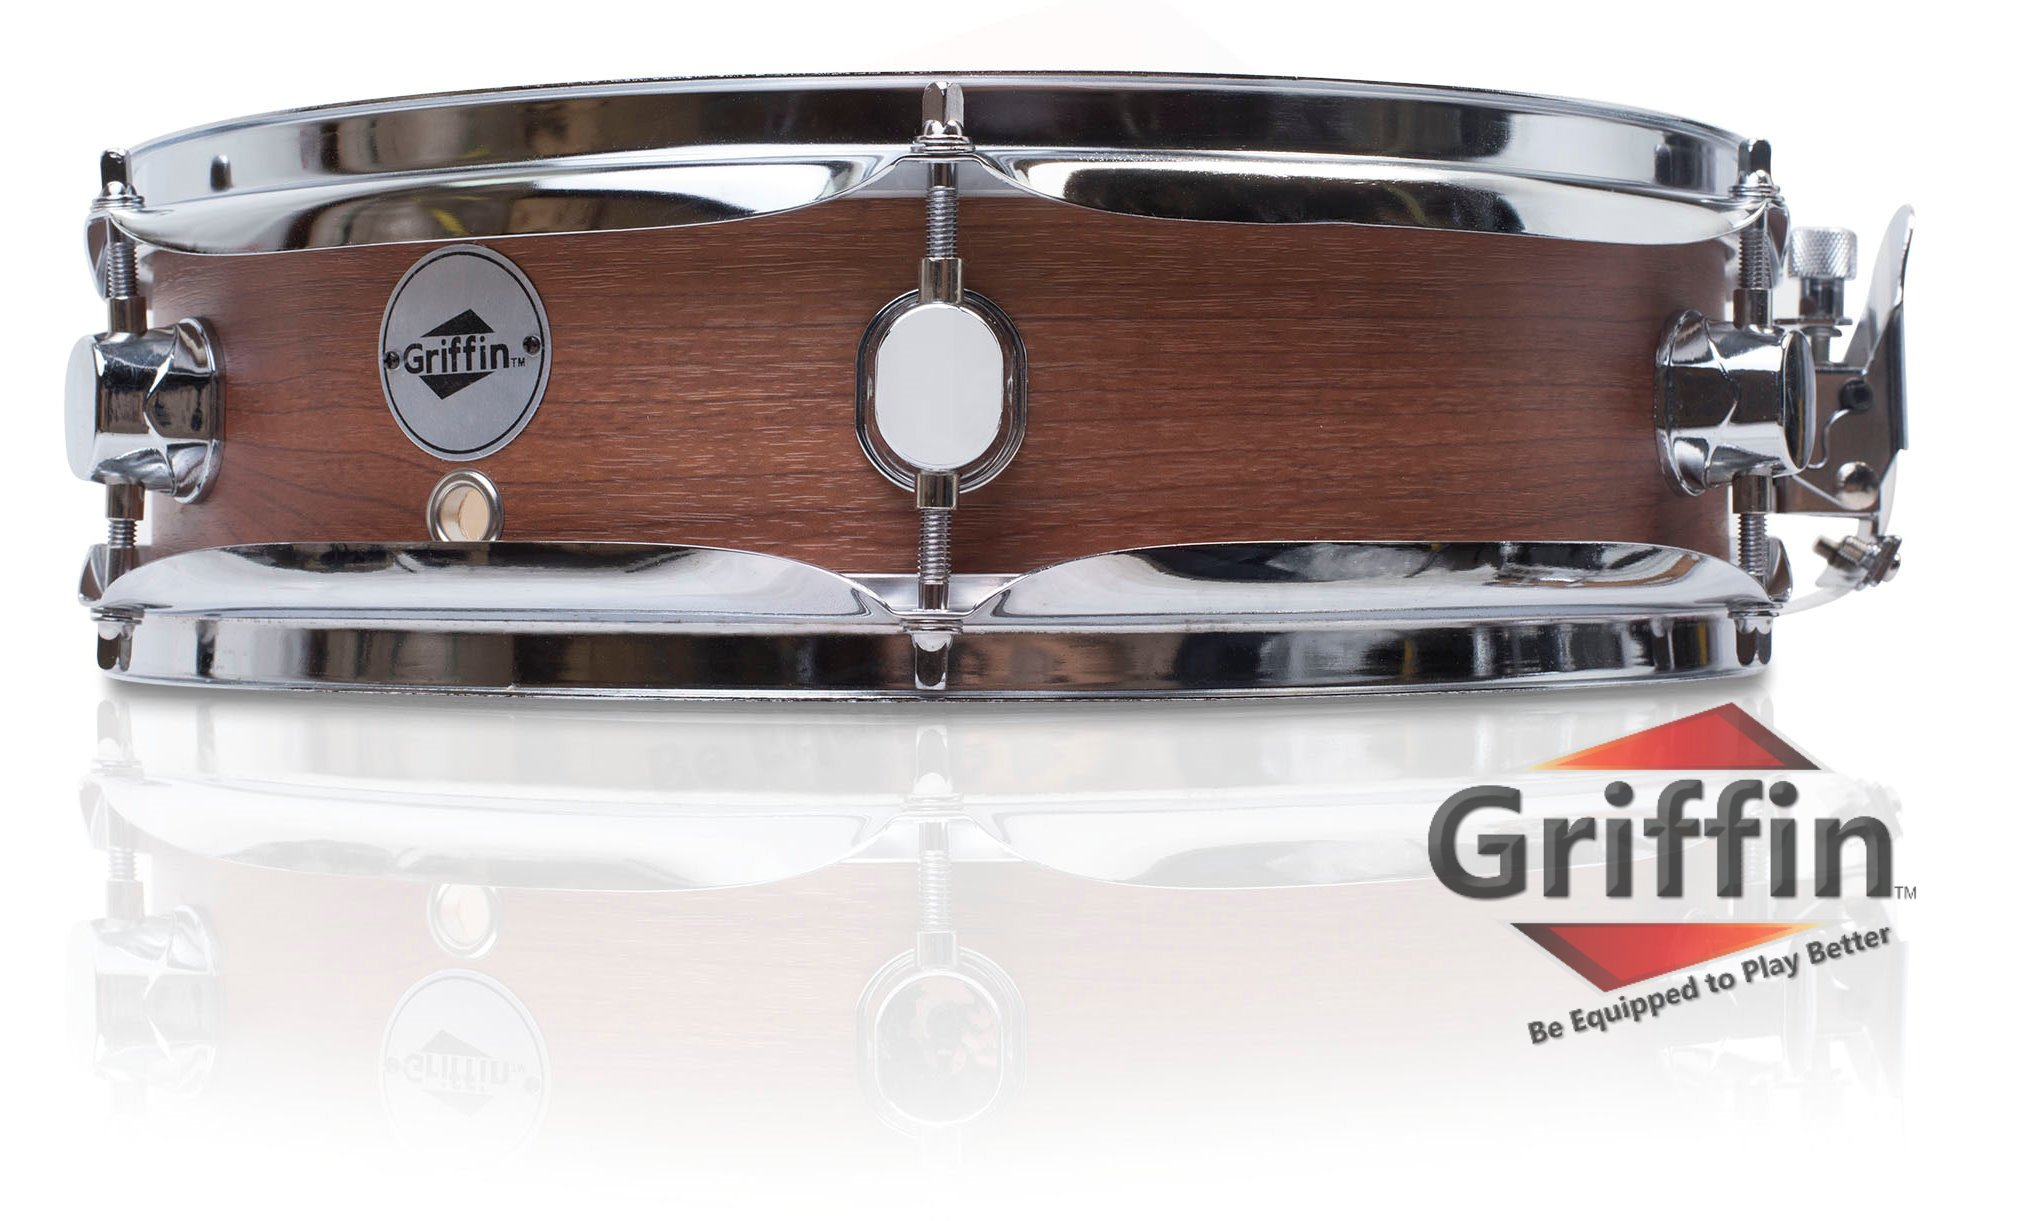 Piccolo Snare Drum 13'' x 3.5'' by Griffin|100% Poplar Wood Shell with Flat Hickory Finish and Coated Drum Head | Professional Drummers Deluxe Percussion Instrument with Bright Tone and Brilliant Attack